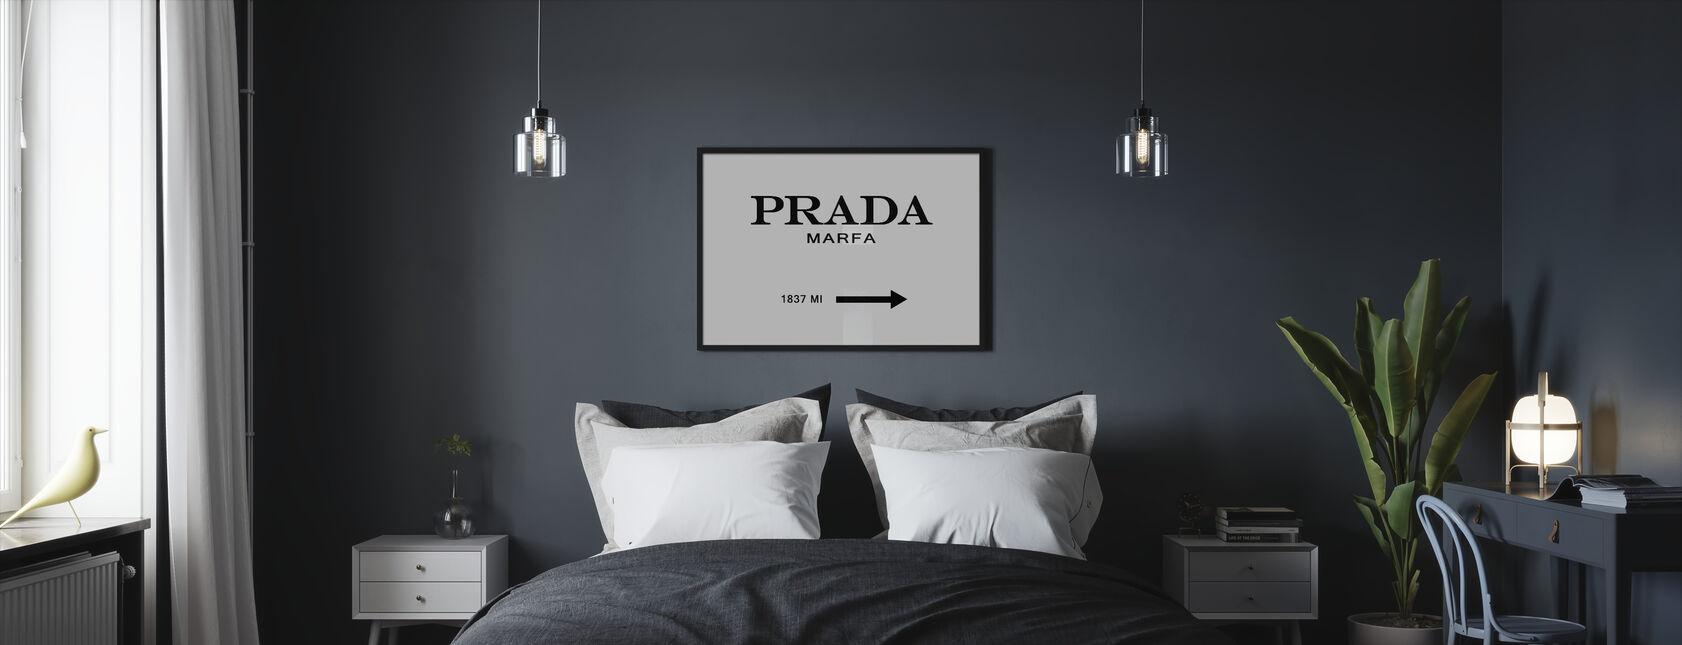 Prada Marfa - Framed print - Bedroom